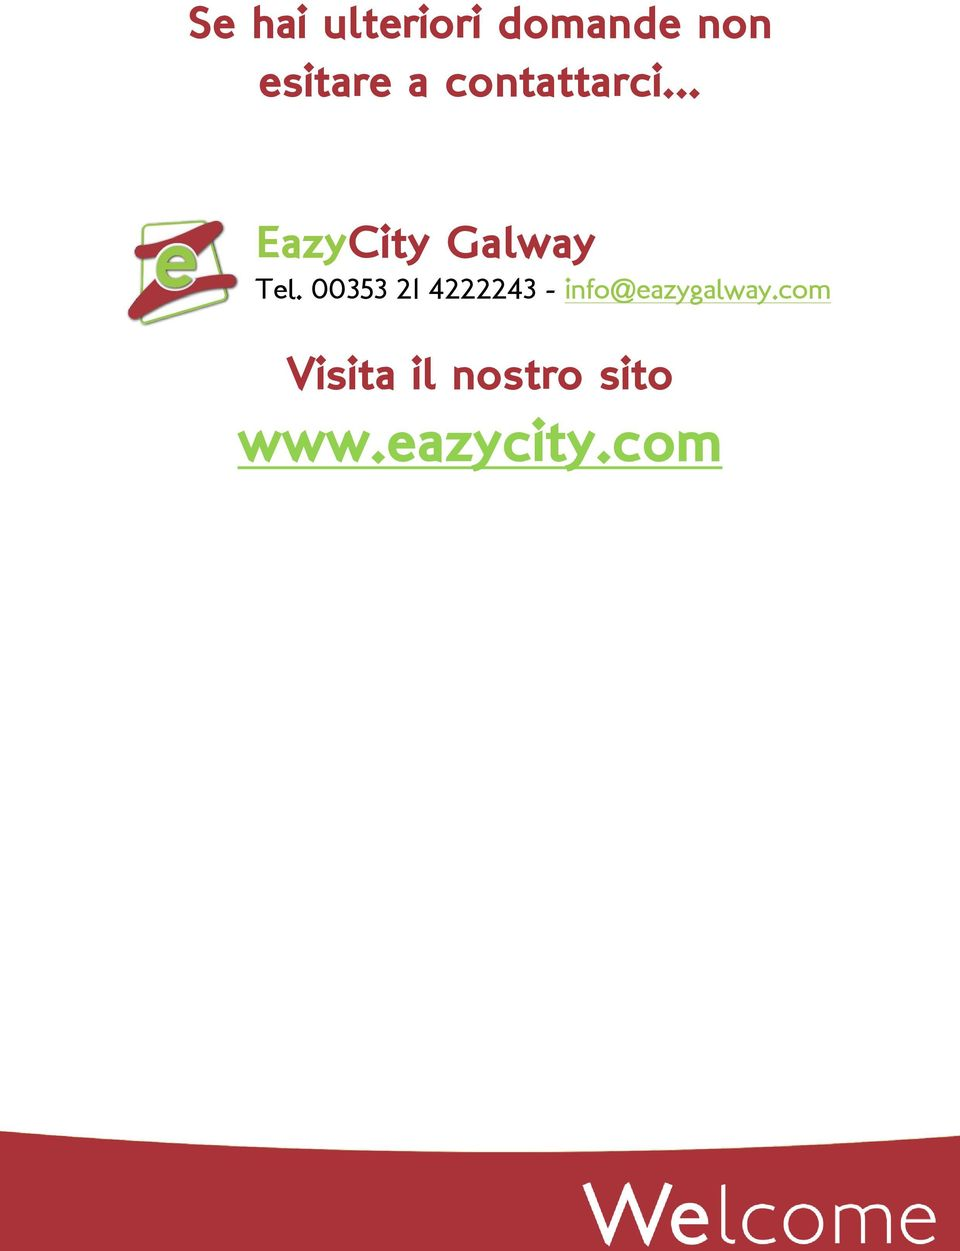 00353 21 4222243 - info@eazygalway.